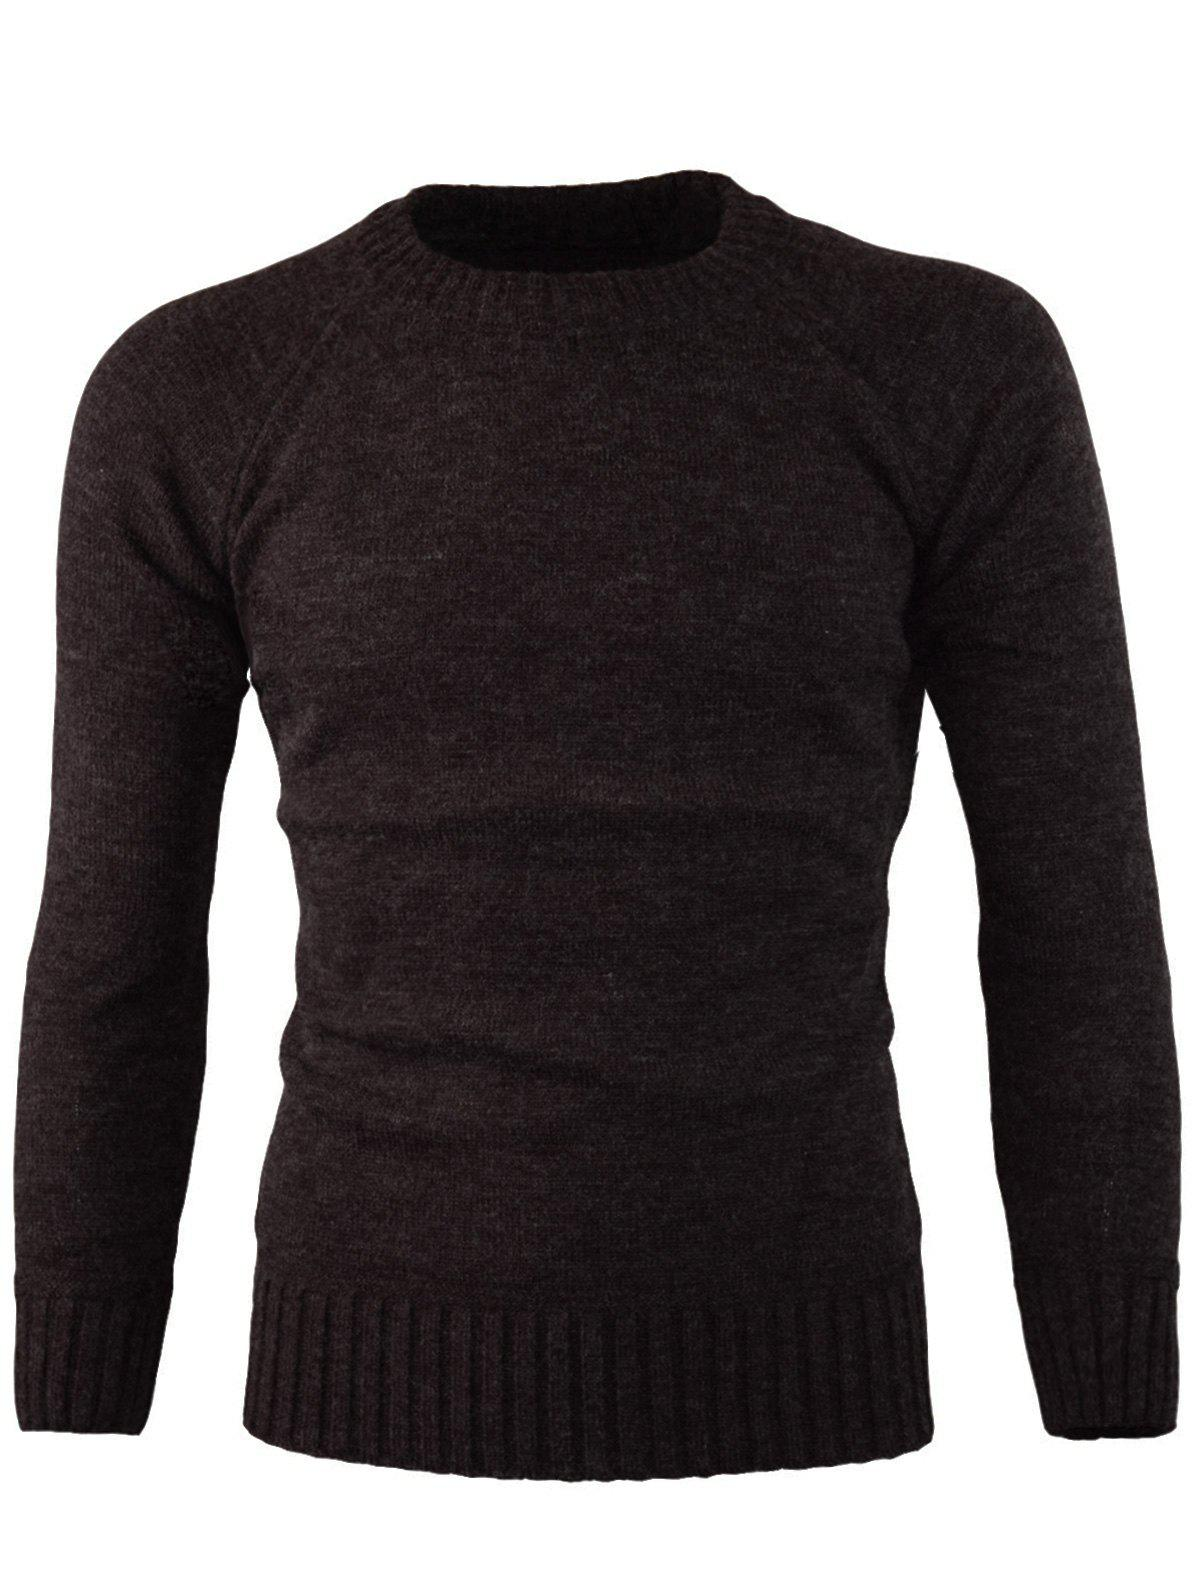 Unique Ribbed Edge Knitted Crew Neck Sweater